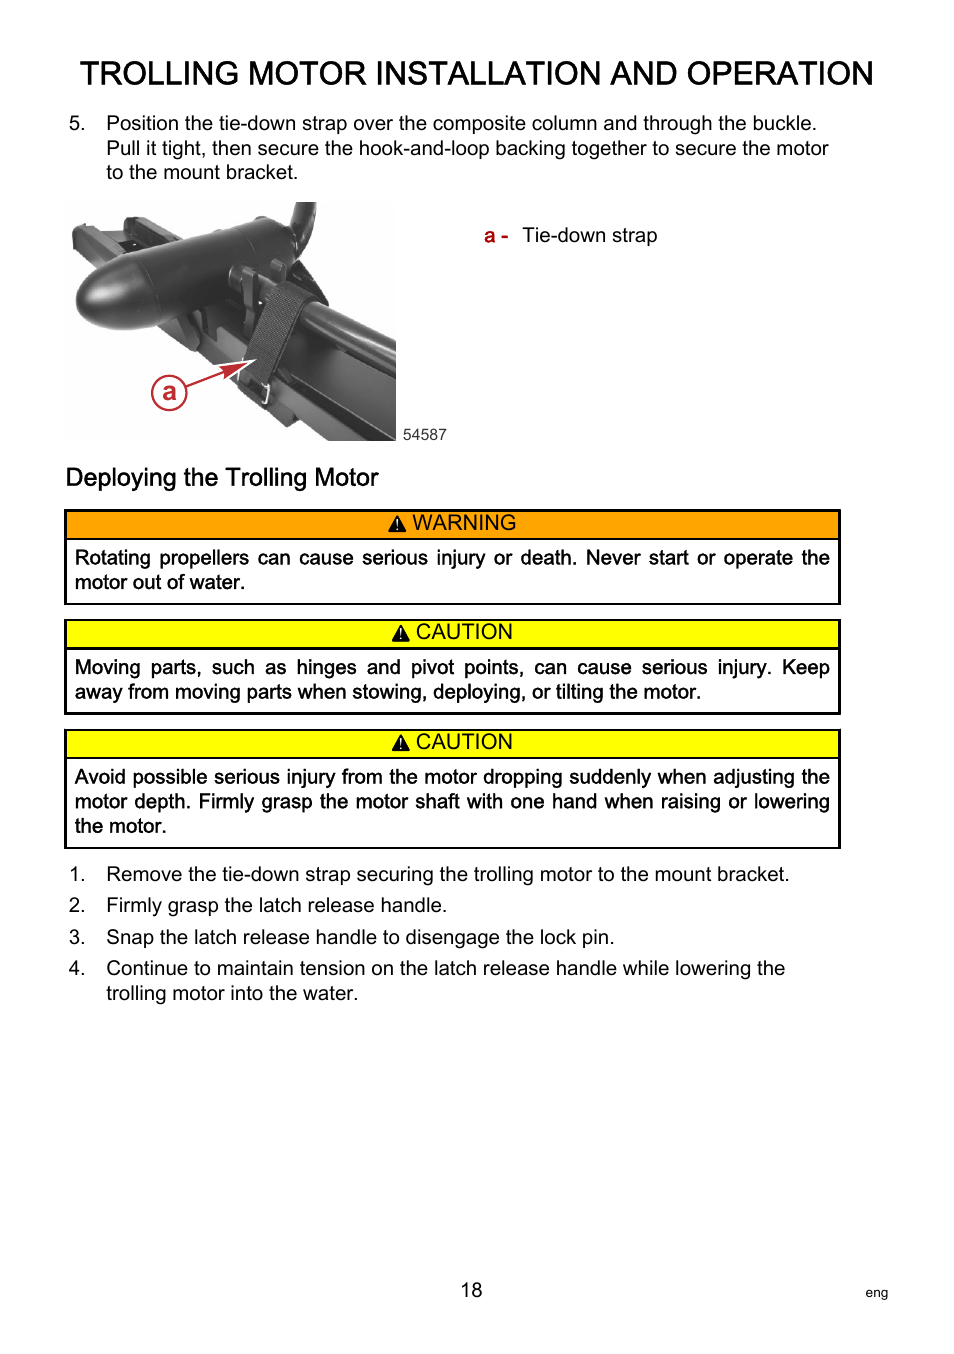 Slowing Down The Trolling Motor Manual Guide